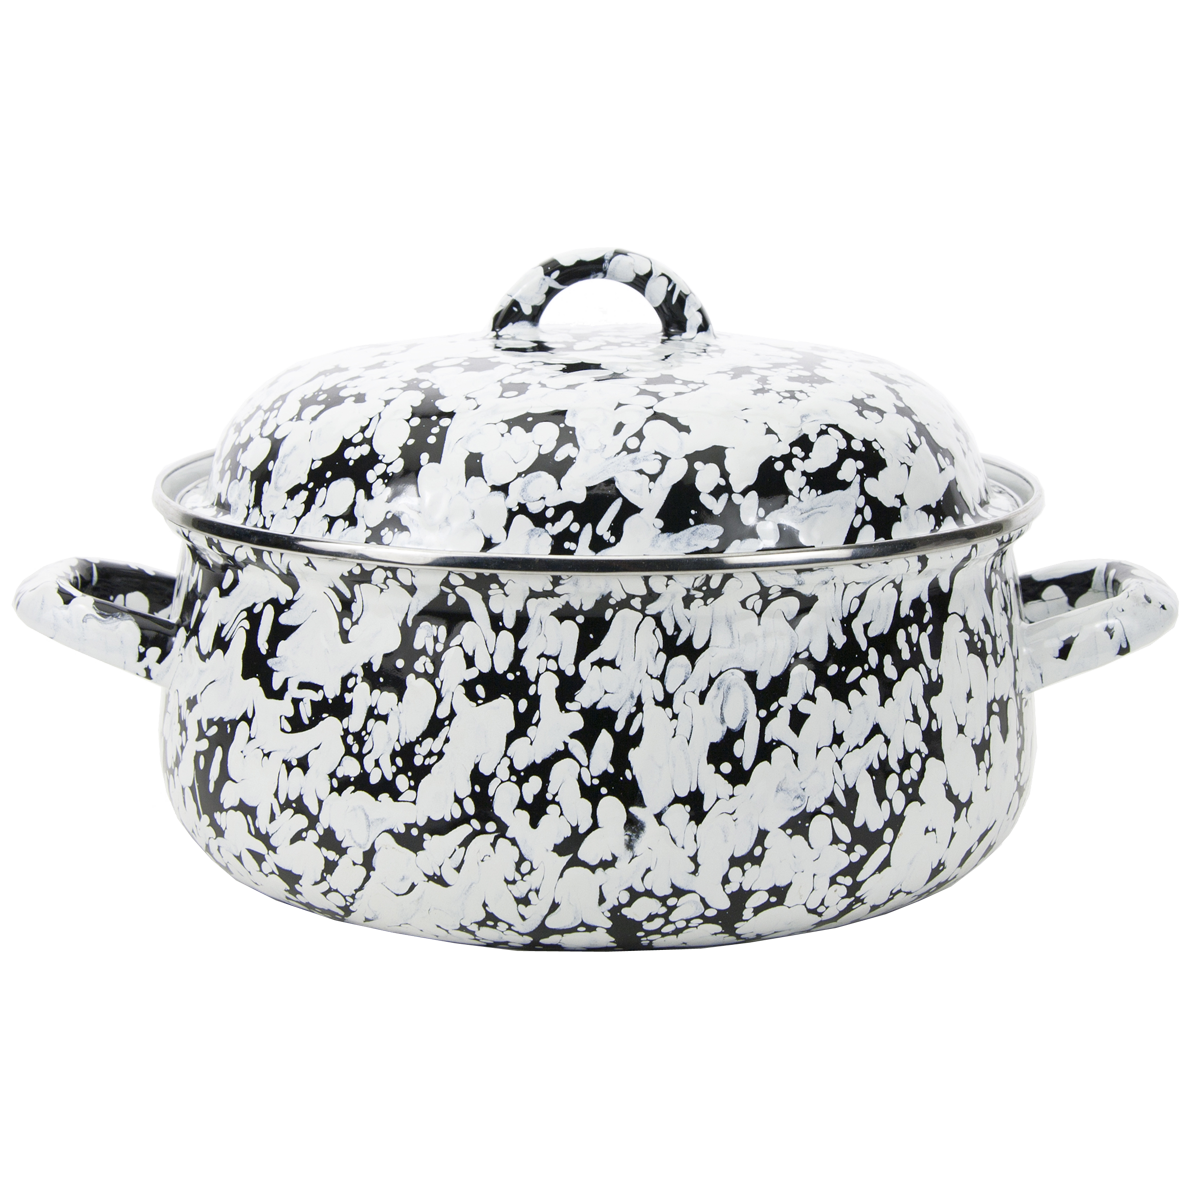 BL31 Black Swirl Dutch Oven